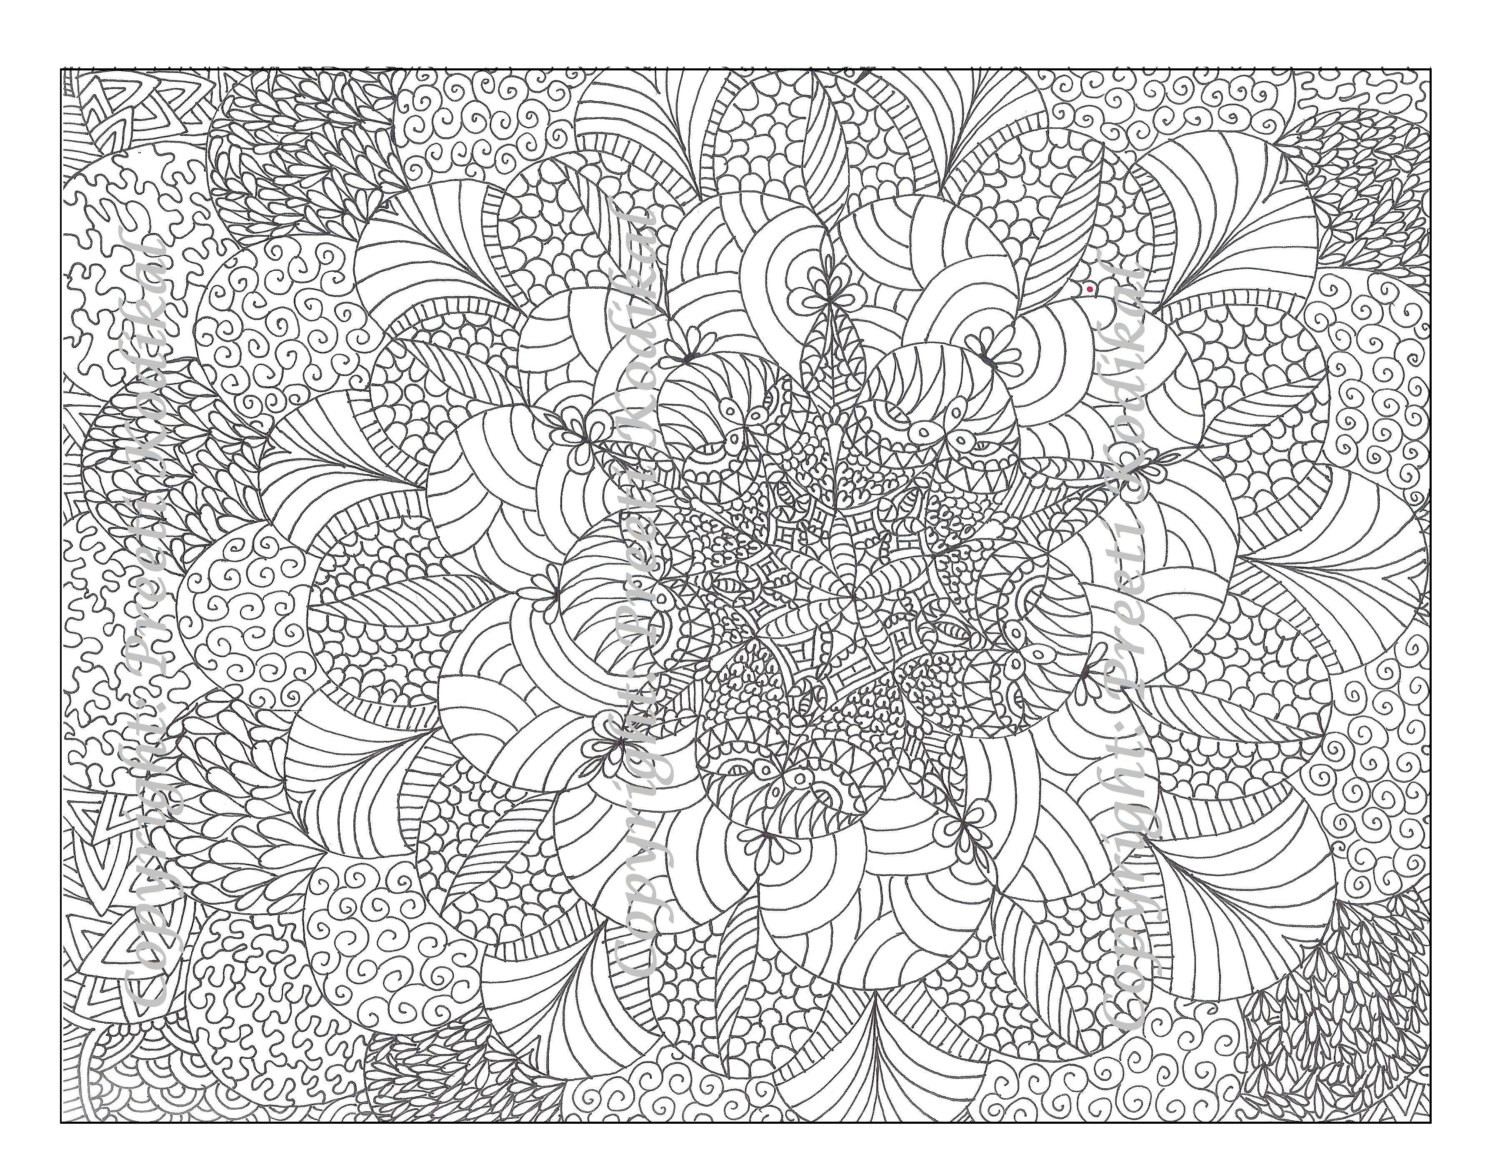 Best ideas about Free Printable Adult Coloring Pages . Save or Pin Free Printable Abstract Coloring Pages for Adults Now.